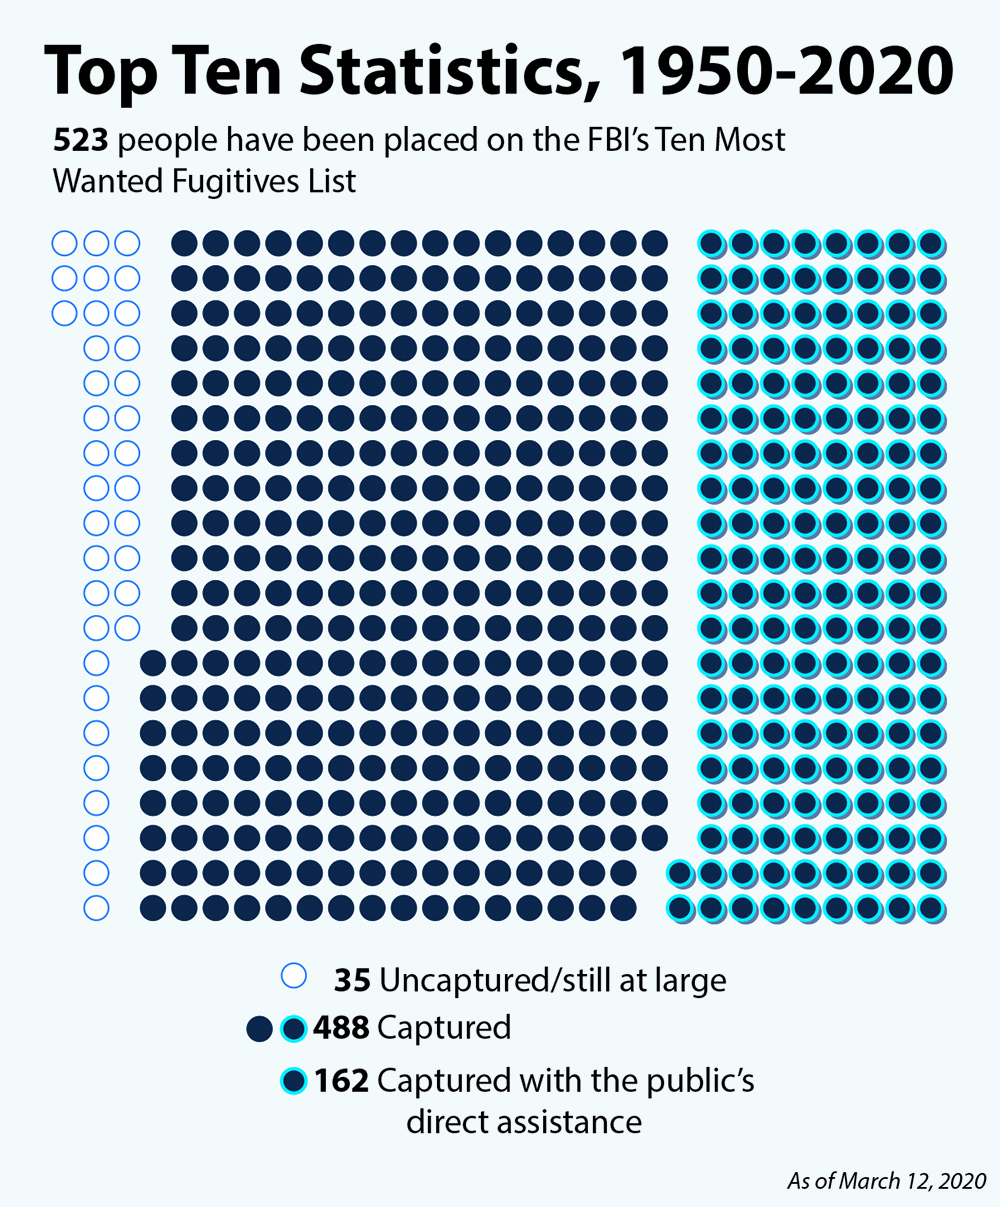 This chart depicts the total number of fugitives (523) placed on the Top Ten Most Wanted Fugitives list from 1950 to 2020, color-coded to indicate those offenders who were captured (488), captured with the public's assistance (162), and uncaptured or still at large (35).